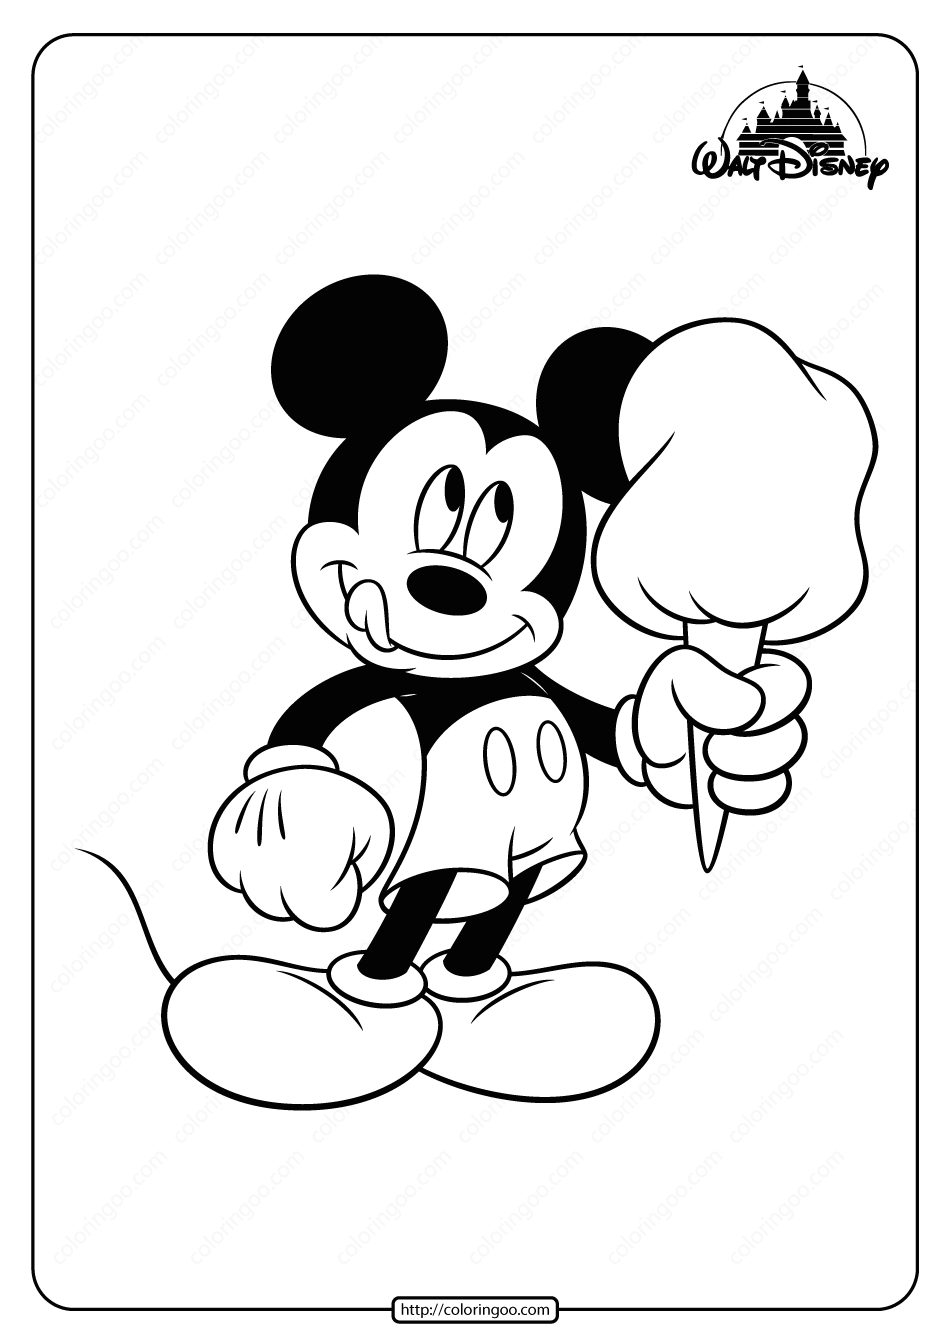 Printable Mickey Mouse Cotton Candy Coloring Page